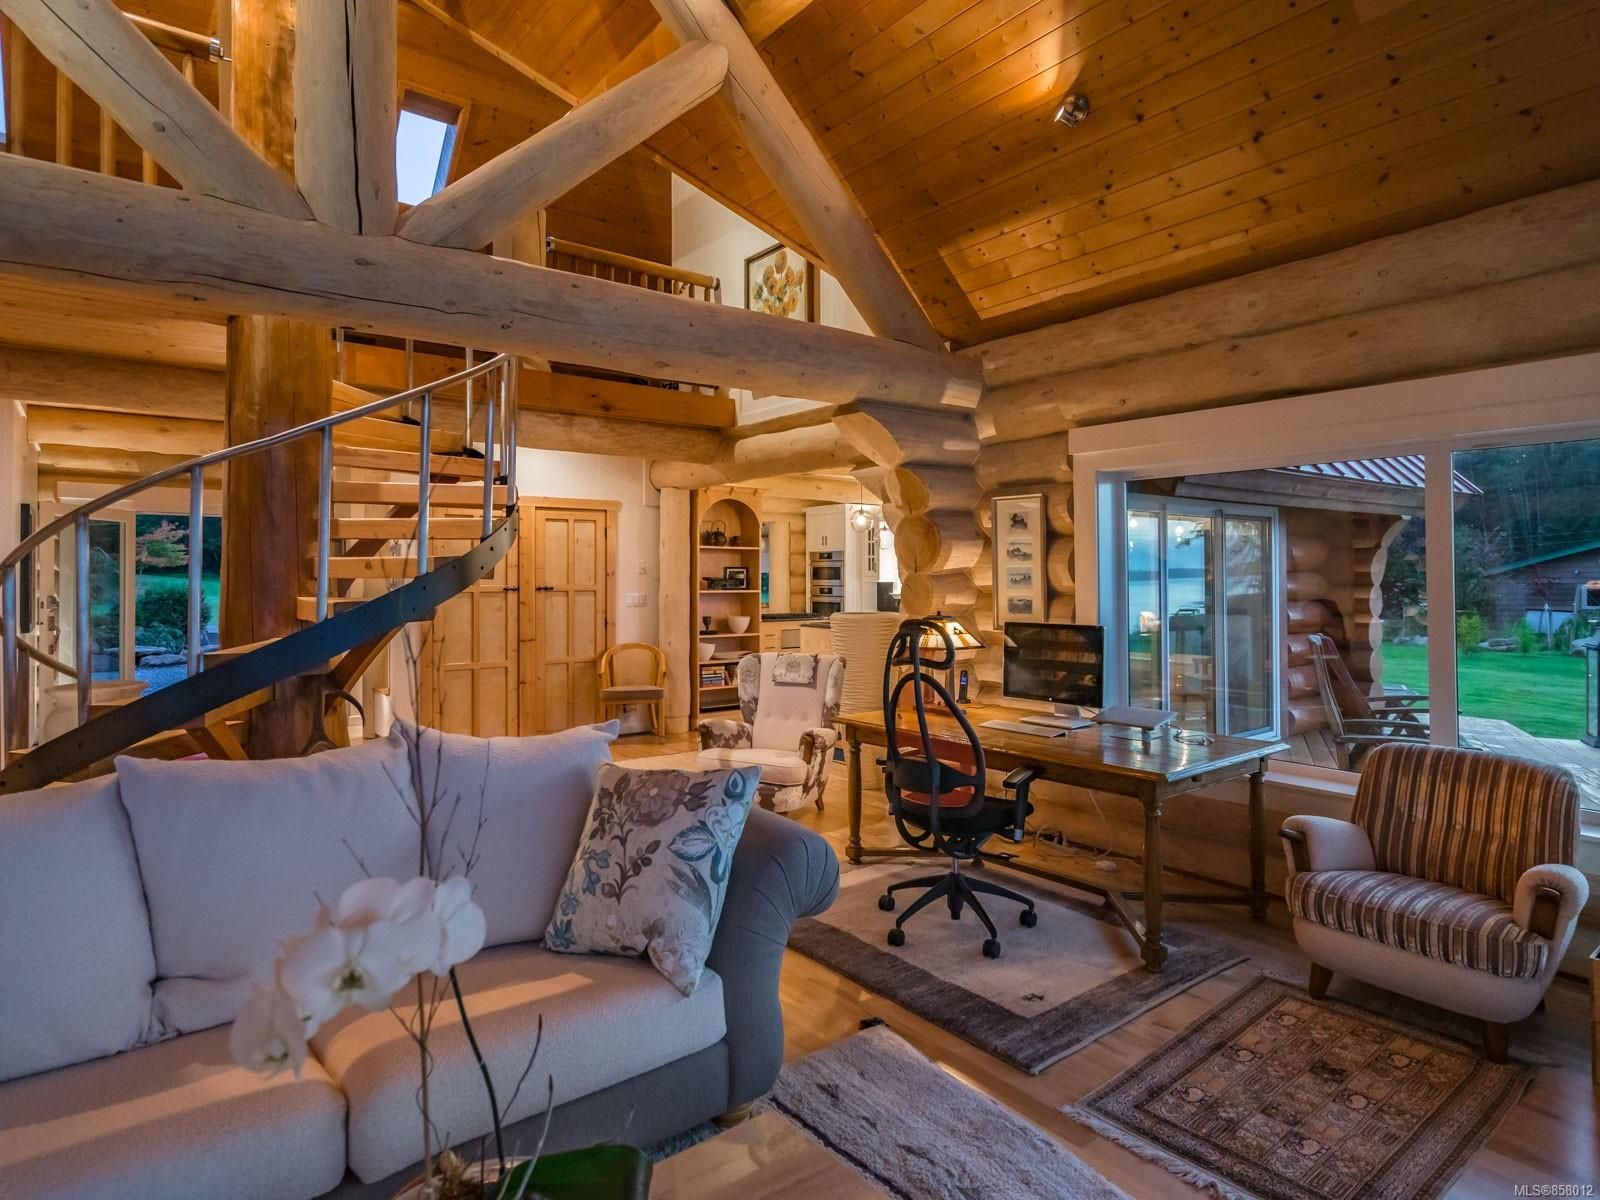 Photo 12: Photos: 6030 MINE Rd in : NI Port McNeill House for sale (North Island)  : MLS®# 858012